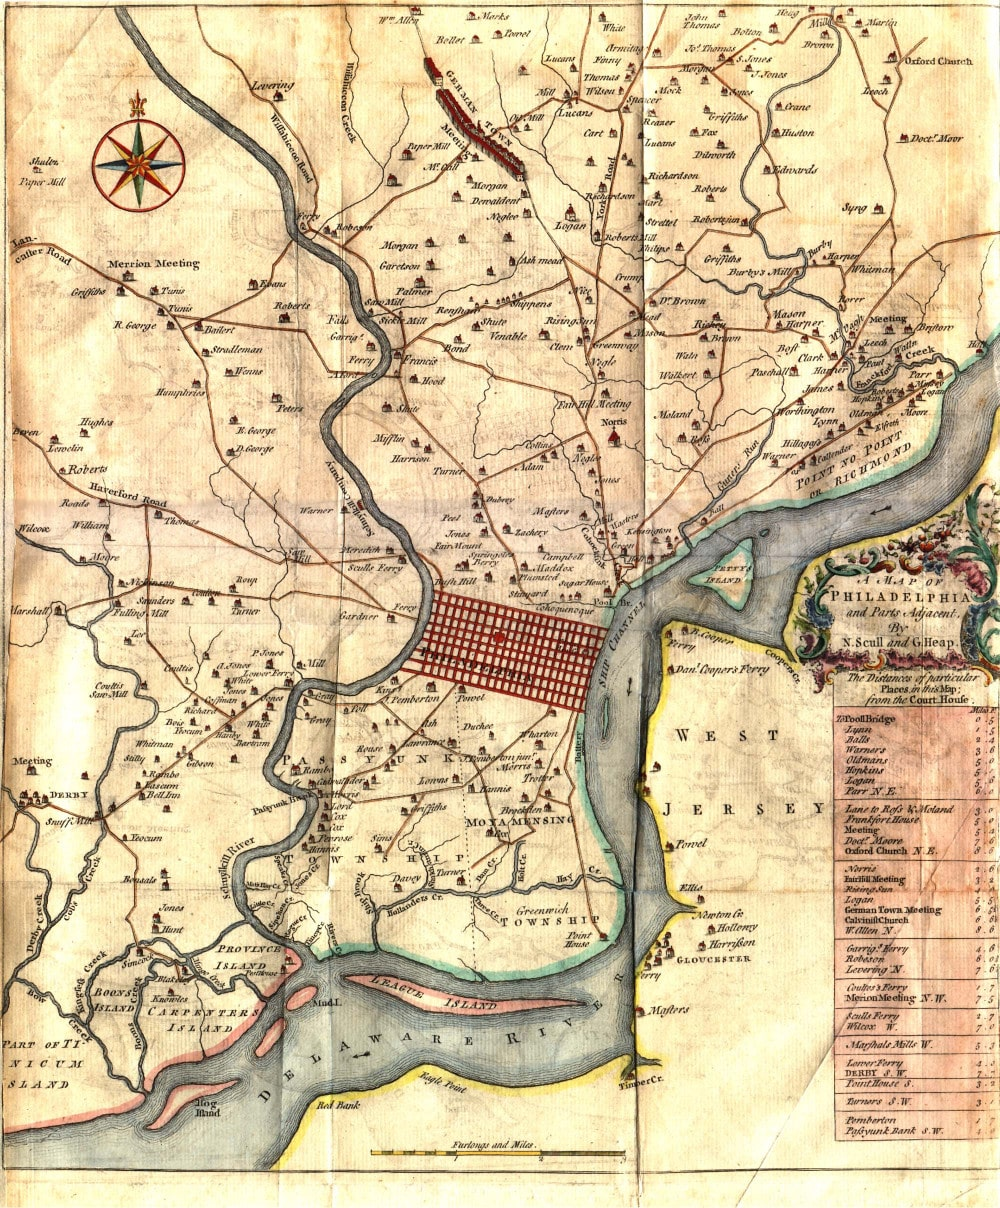 Antique Maps Philadelphia Local Antique Maps | Lower Merion Historical Society